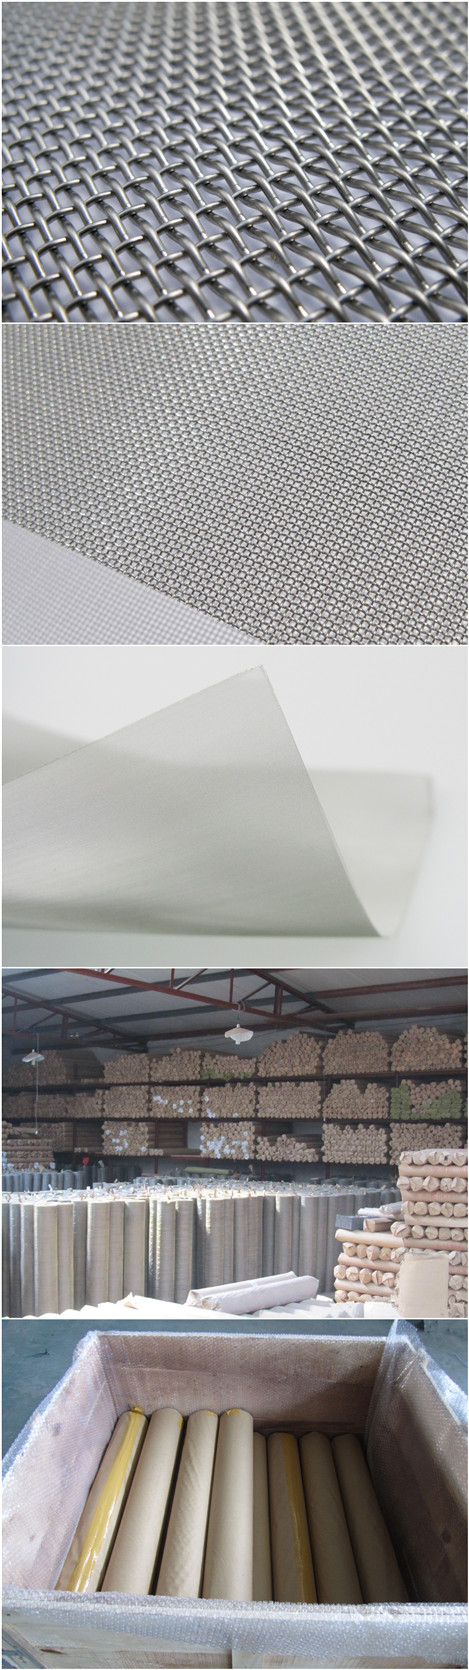 China Hot Sale 302 / 304/ 316 Stainless Steel Woven Wire Mesh